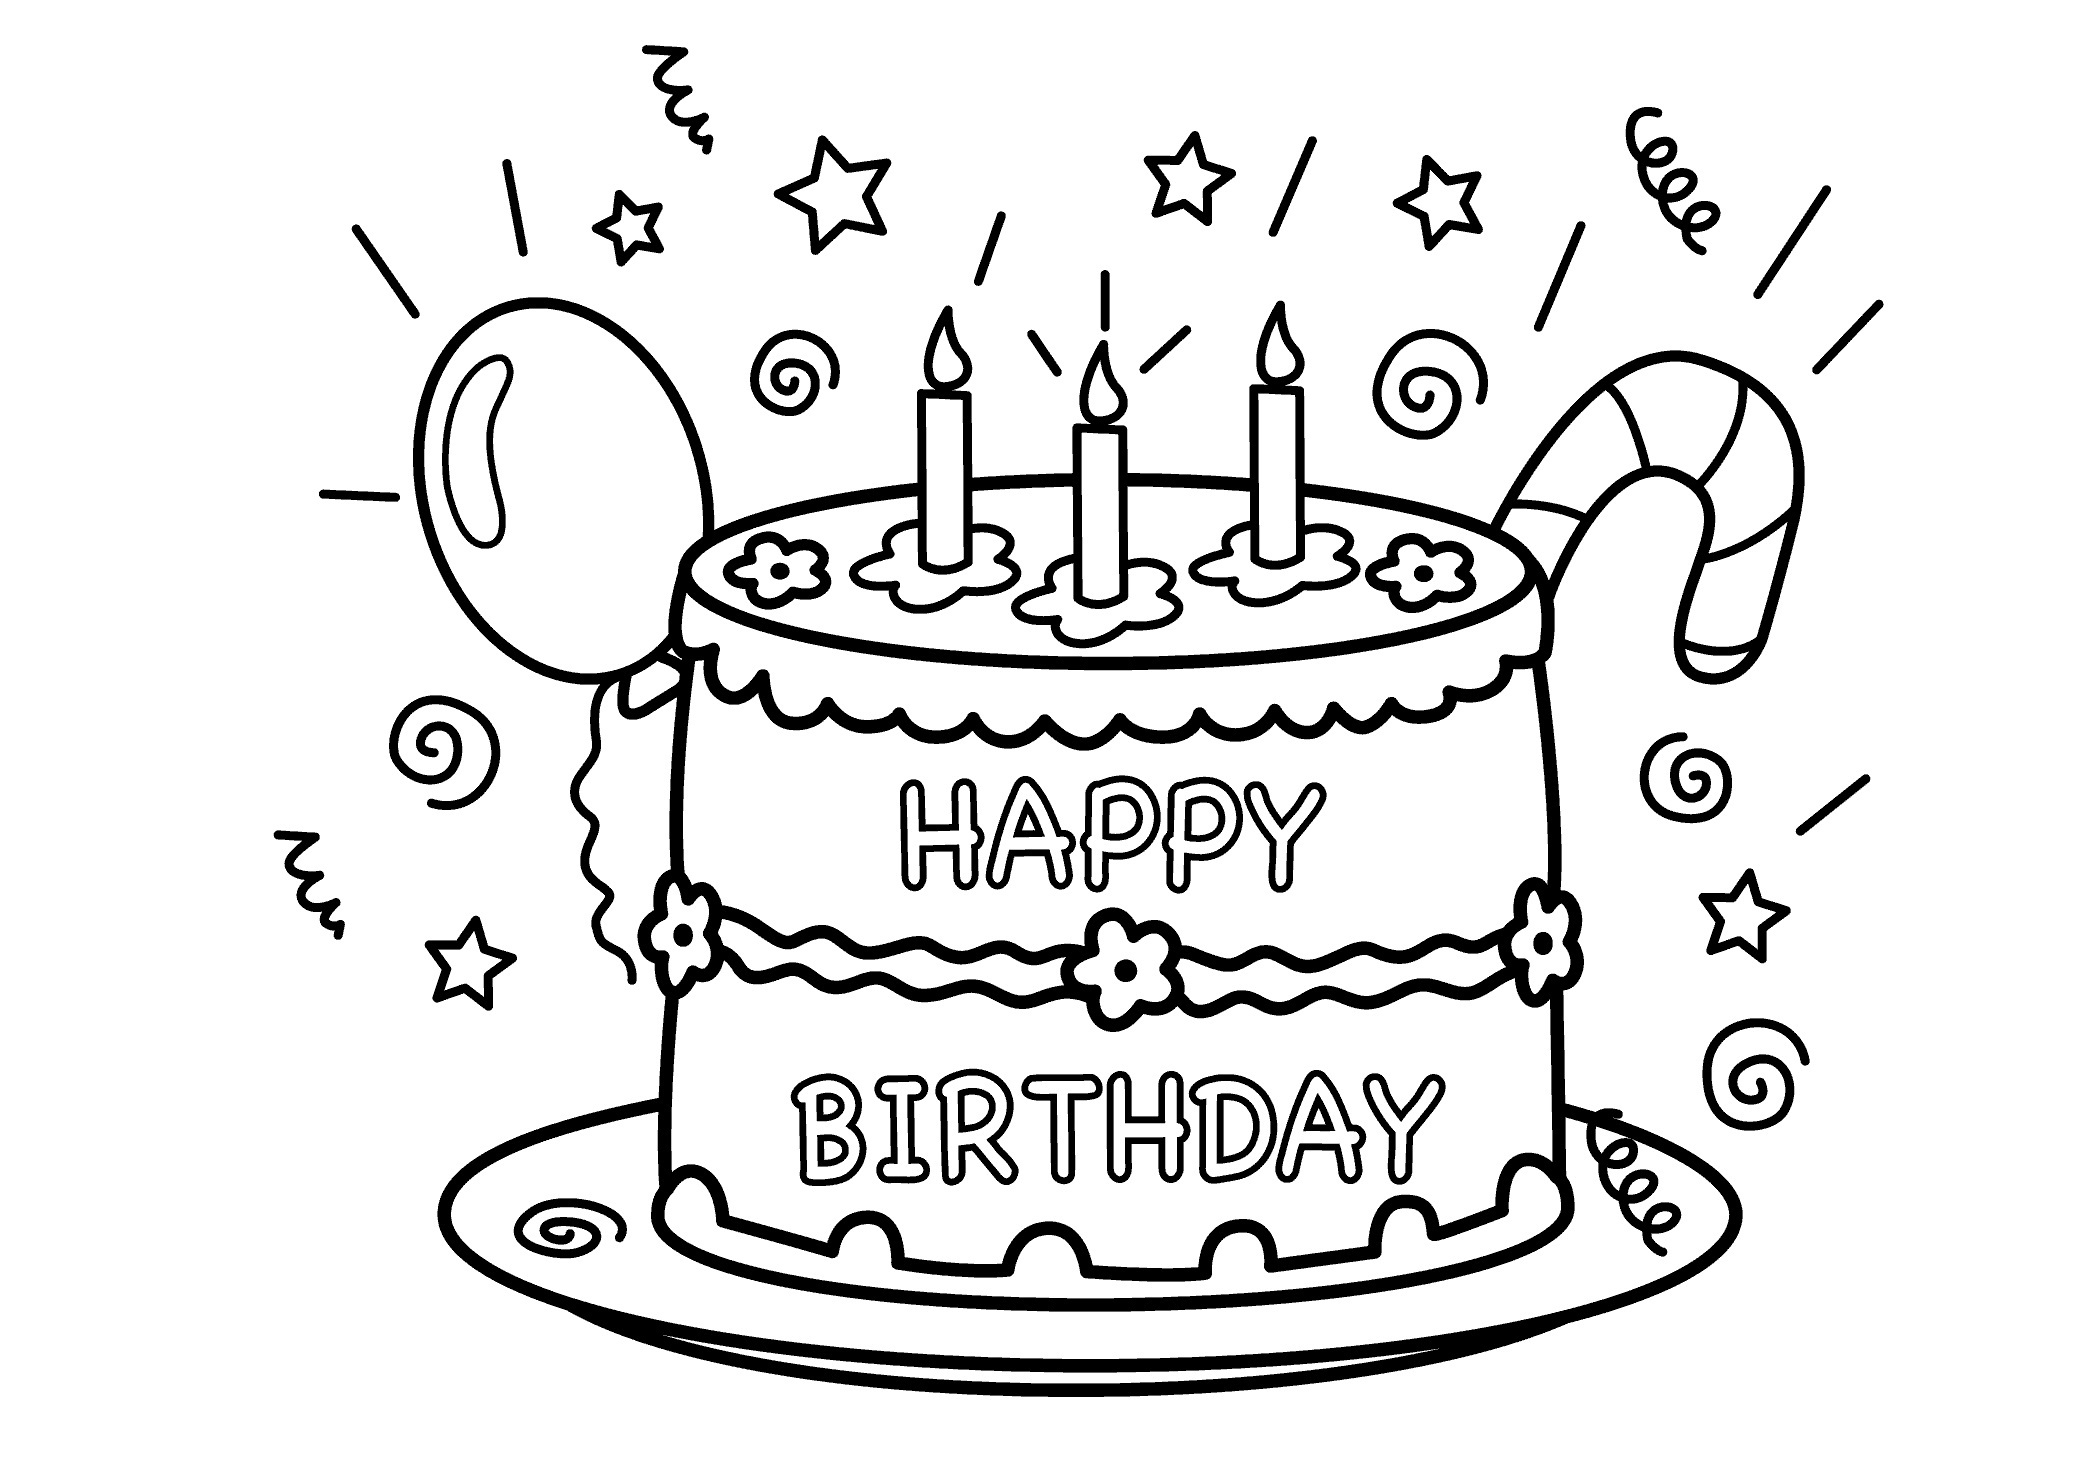 cake coloring pages to print free printable birthday cake coloring pages for kids cake coloring print pages to